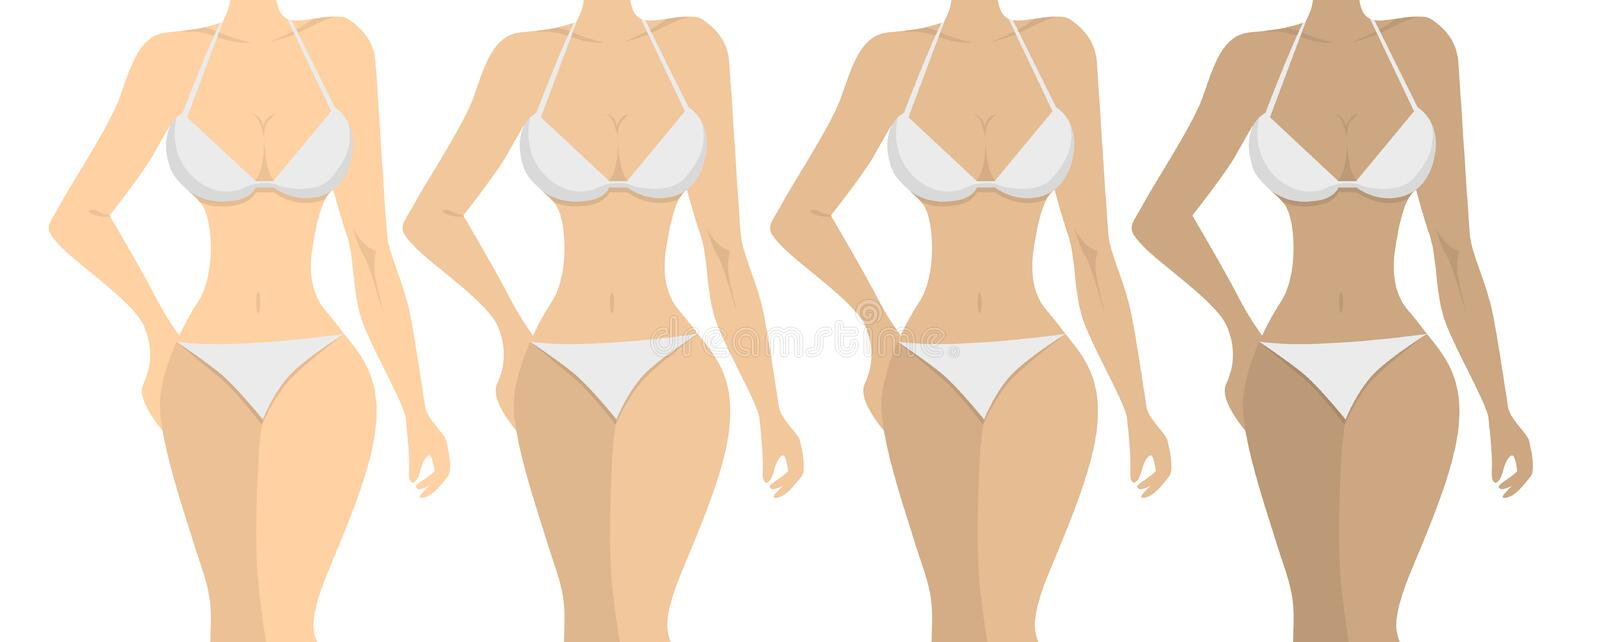 Stages of tanning. royalty free illustration